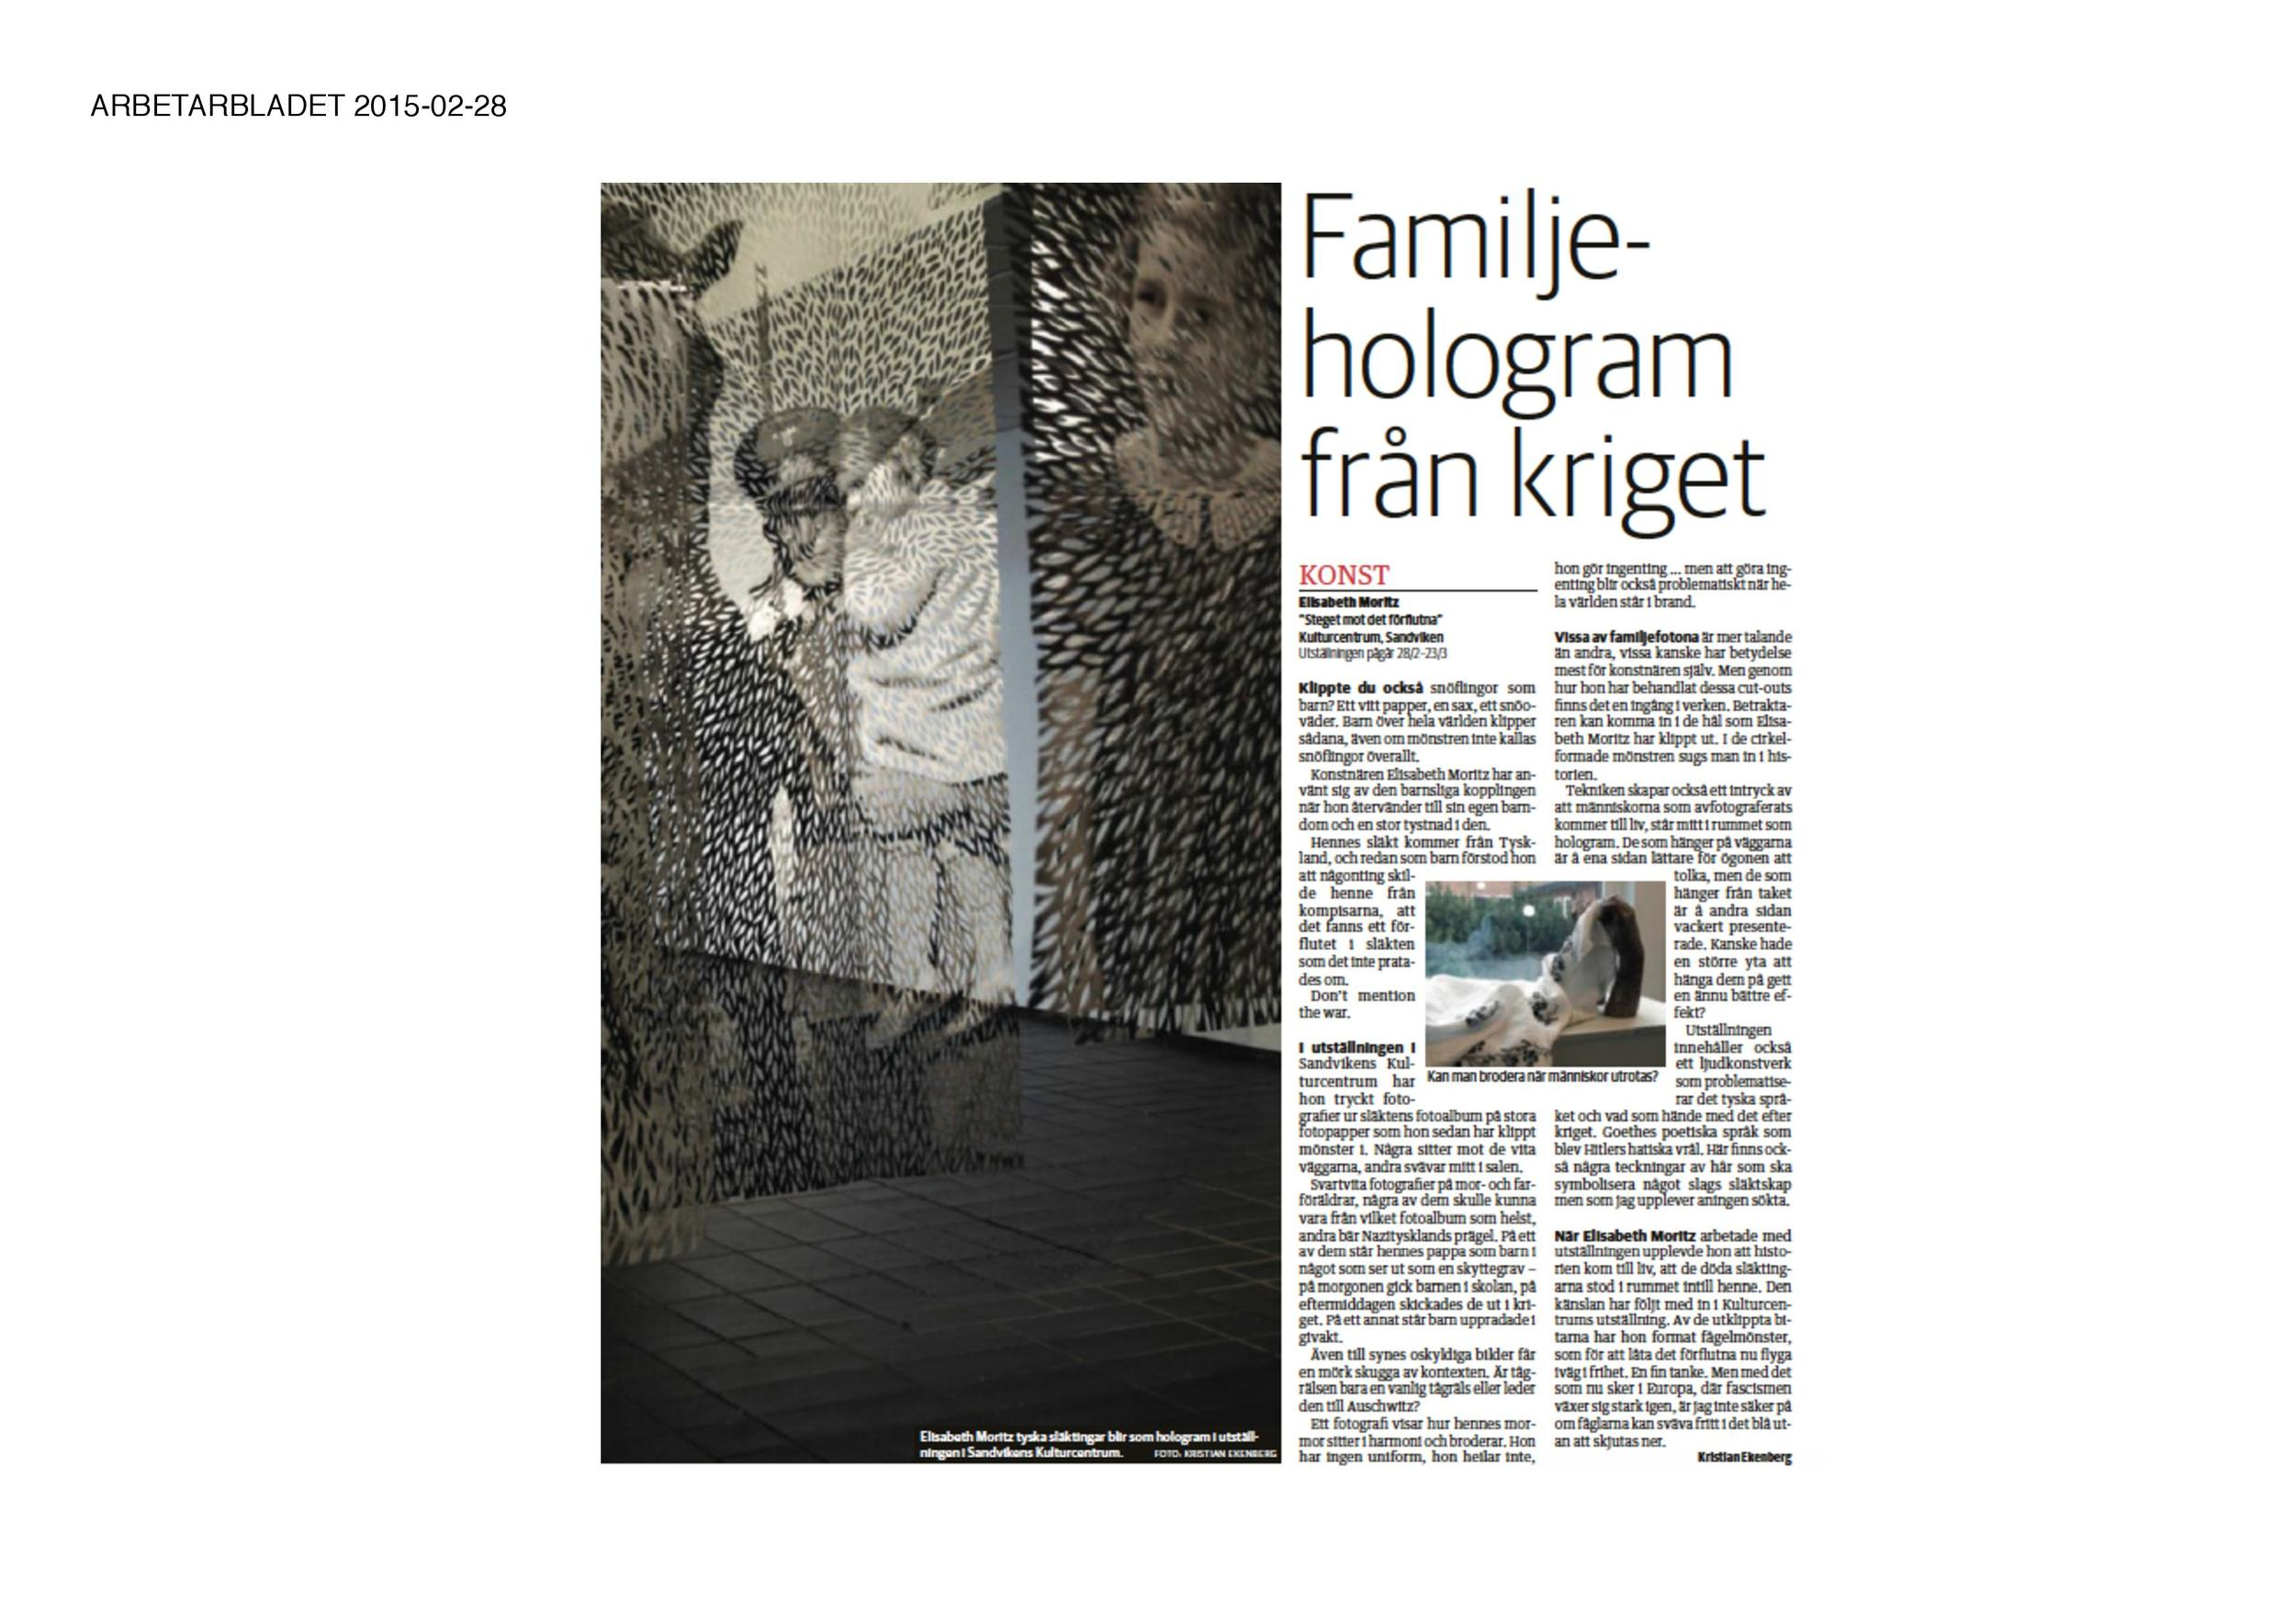 PRESS CLIPPINGS-page-002.jpg